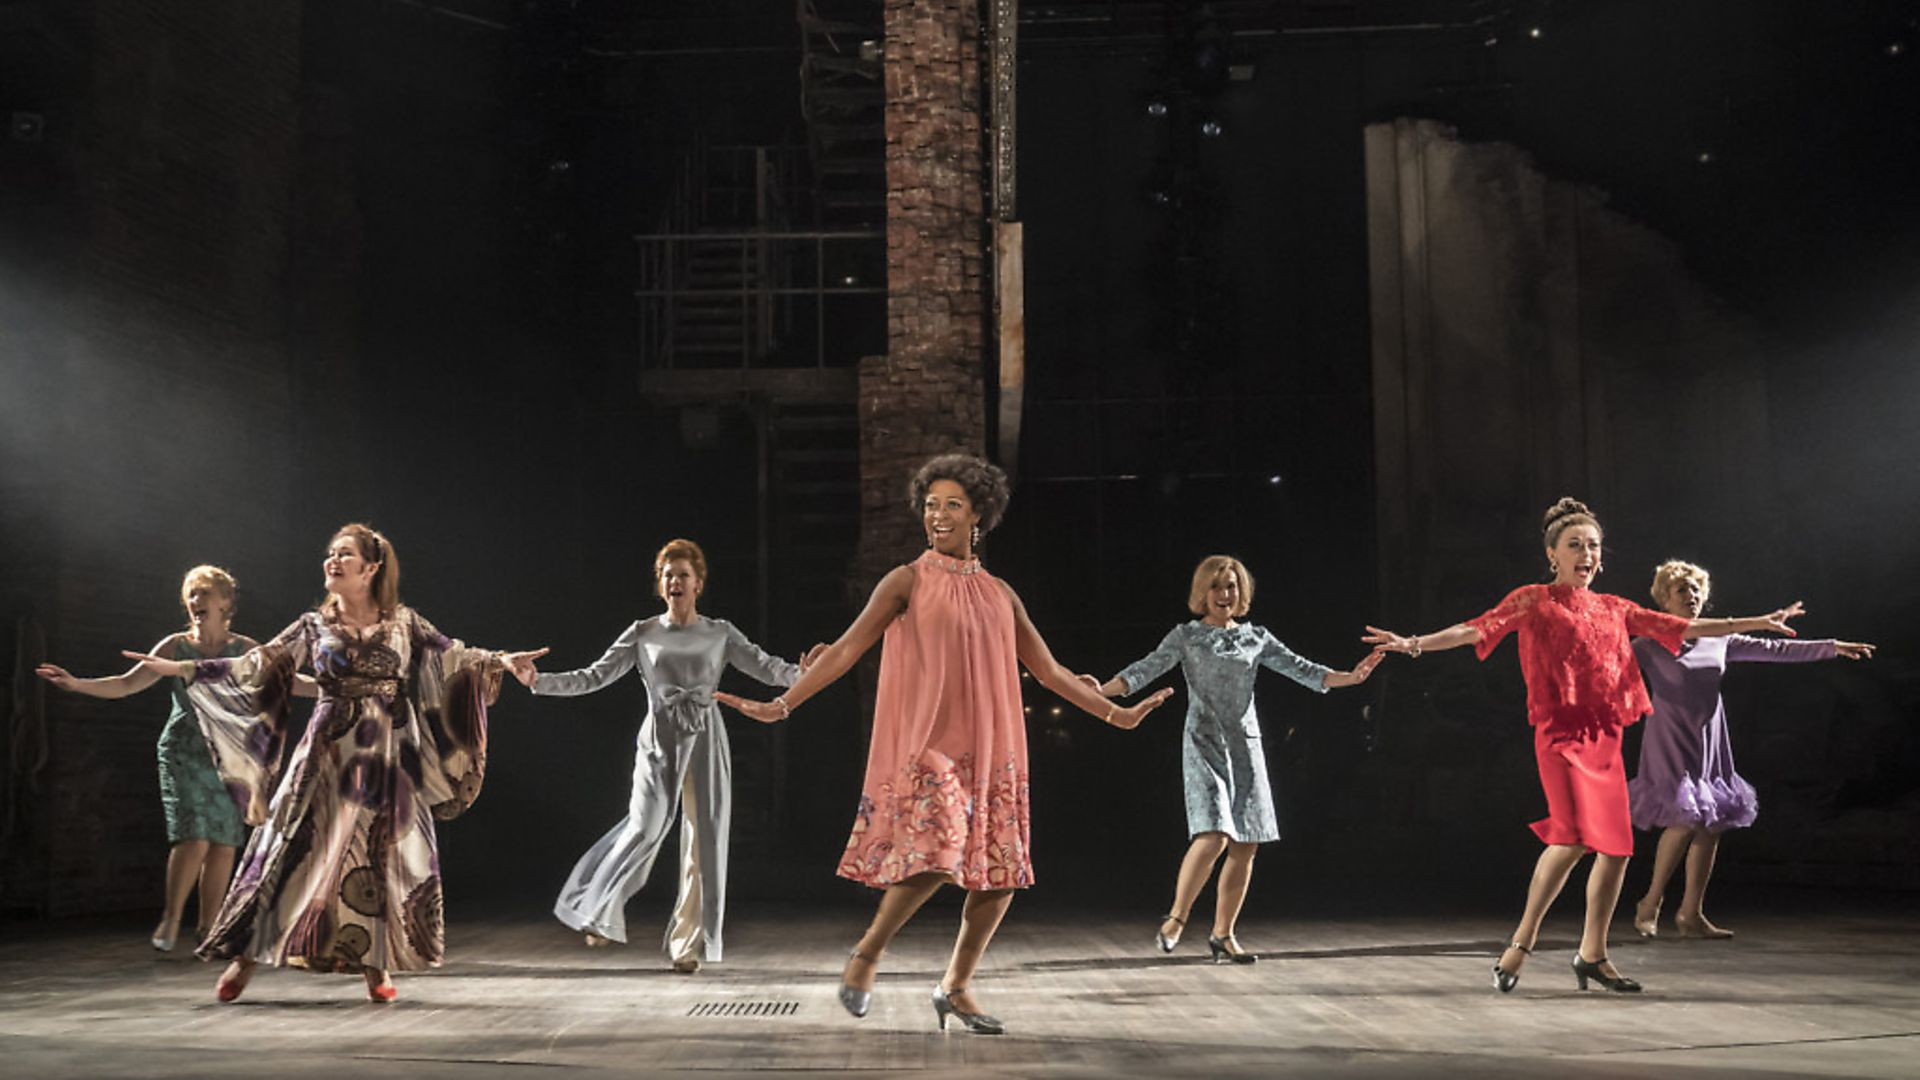 FOLLIES by Sondheim ;  Directed by Dominic Cooke ; Designed by Vicki Mortimer ; Lighting Designer - Paule Constable,  at the National Theatre, London, UK ; 2019 ; Credit : Johan Persson / - Credit: Archant